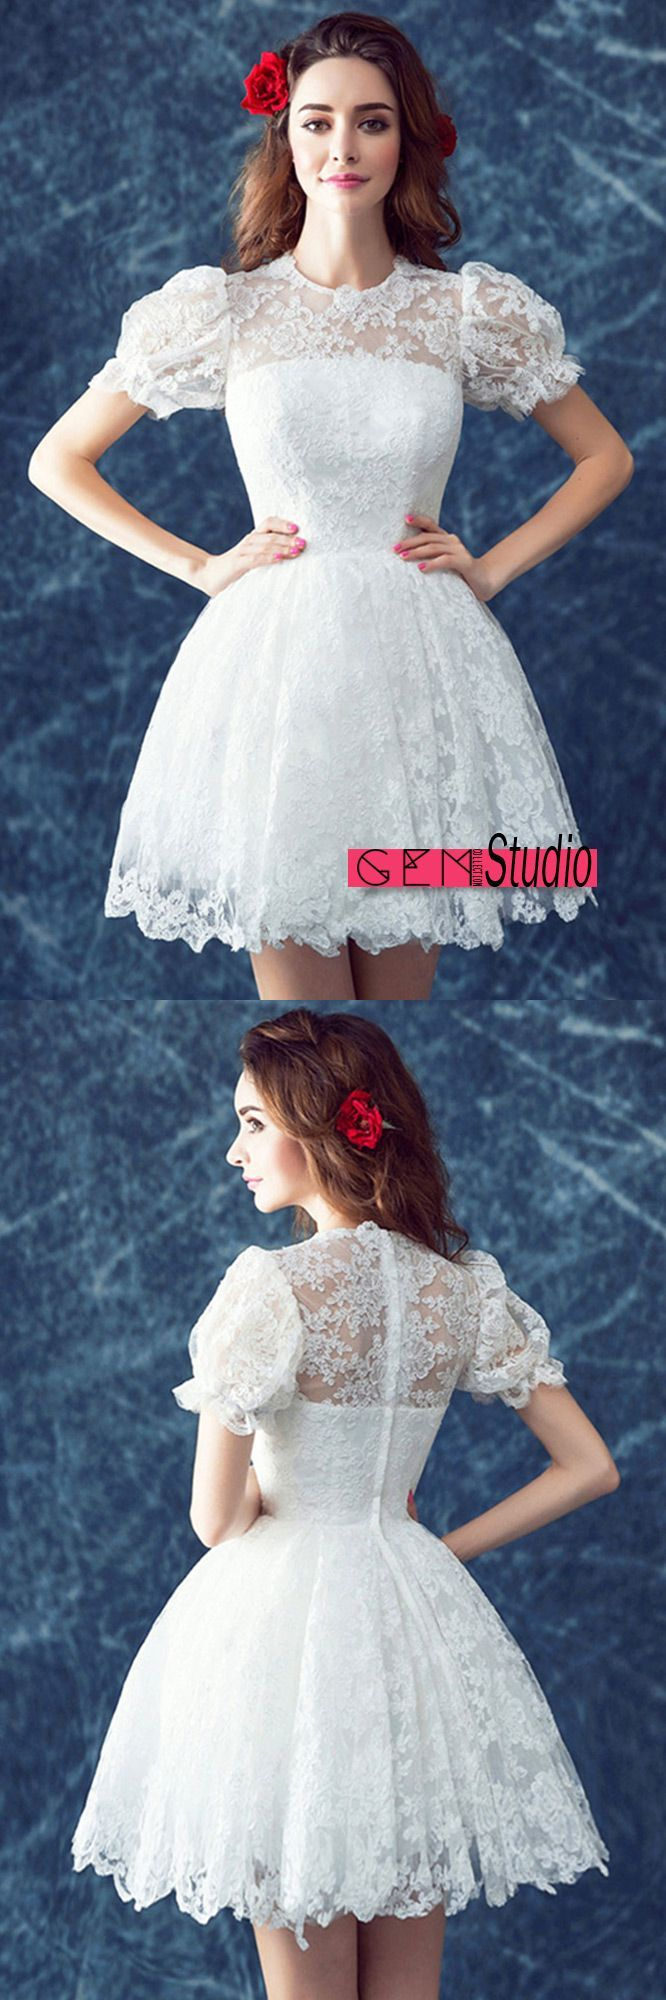 Retro lace short wedding dresses with short sleeves cute high neck